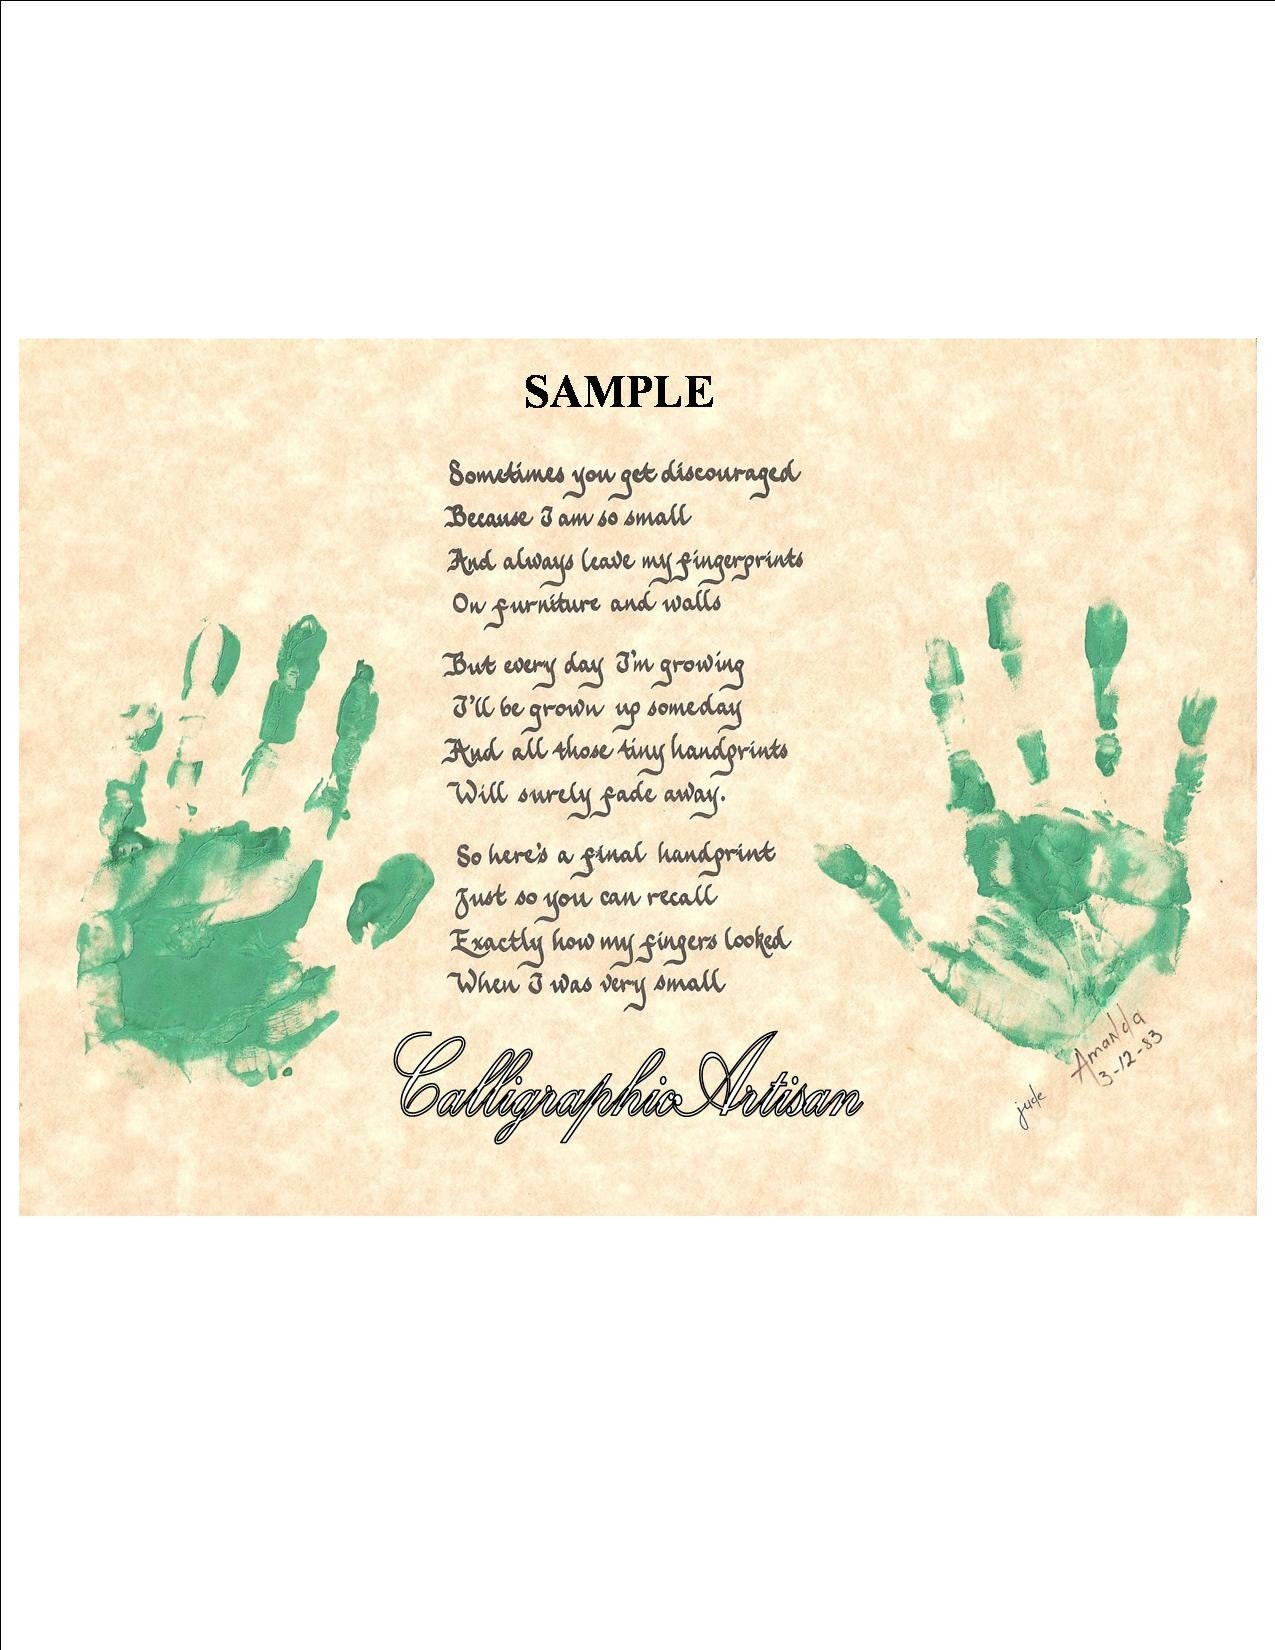 Hand Scribed 'Childrens' Handprint Poem' by CalligraphicArtisan